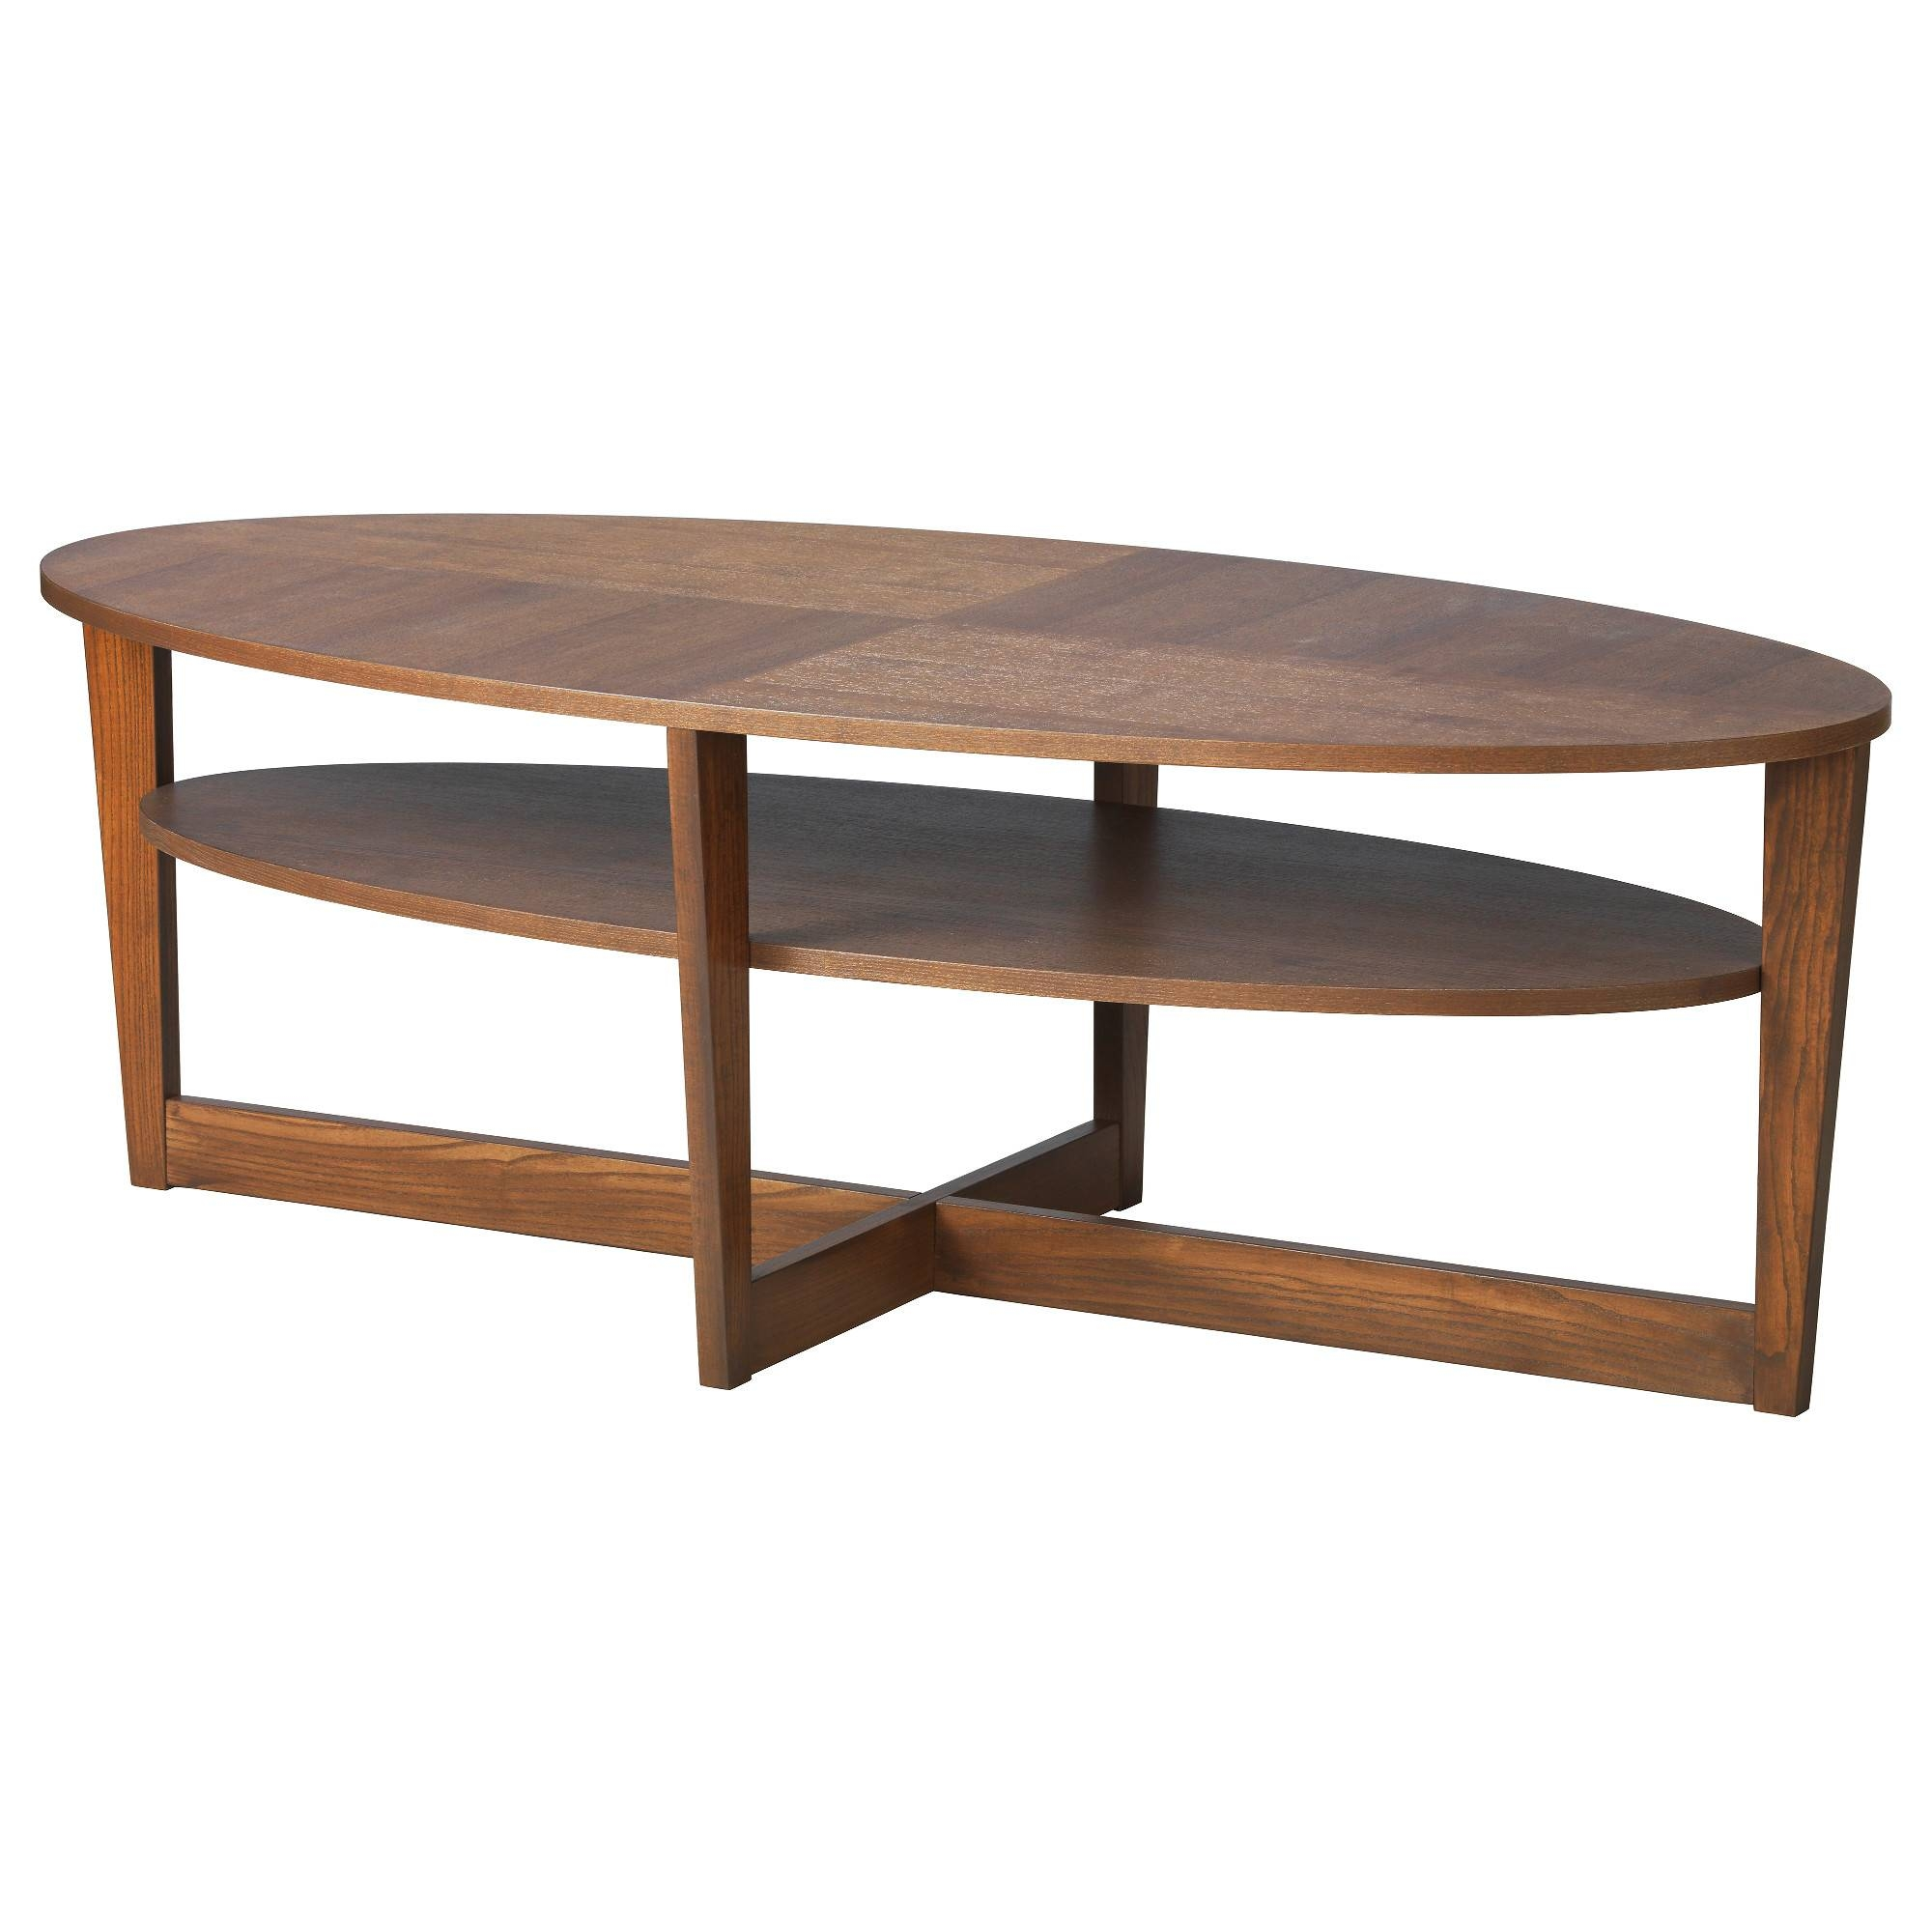 Furniture Home : Simple Wood Coffee Table Designs New 2017New 2017 within Simple Glass Coffee Tables (Image 23 of 30)